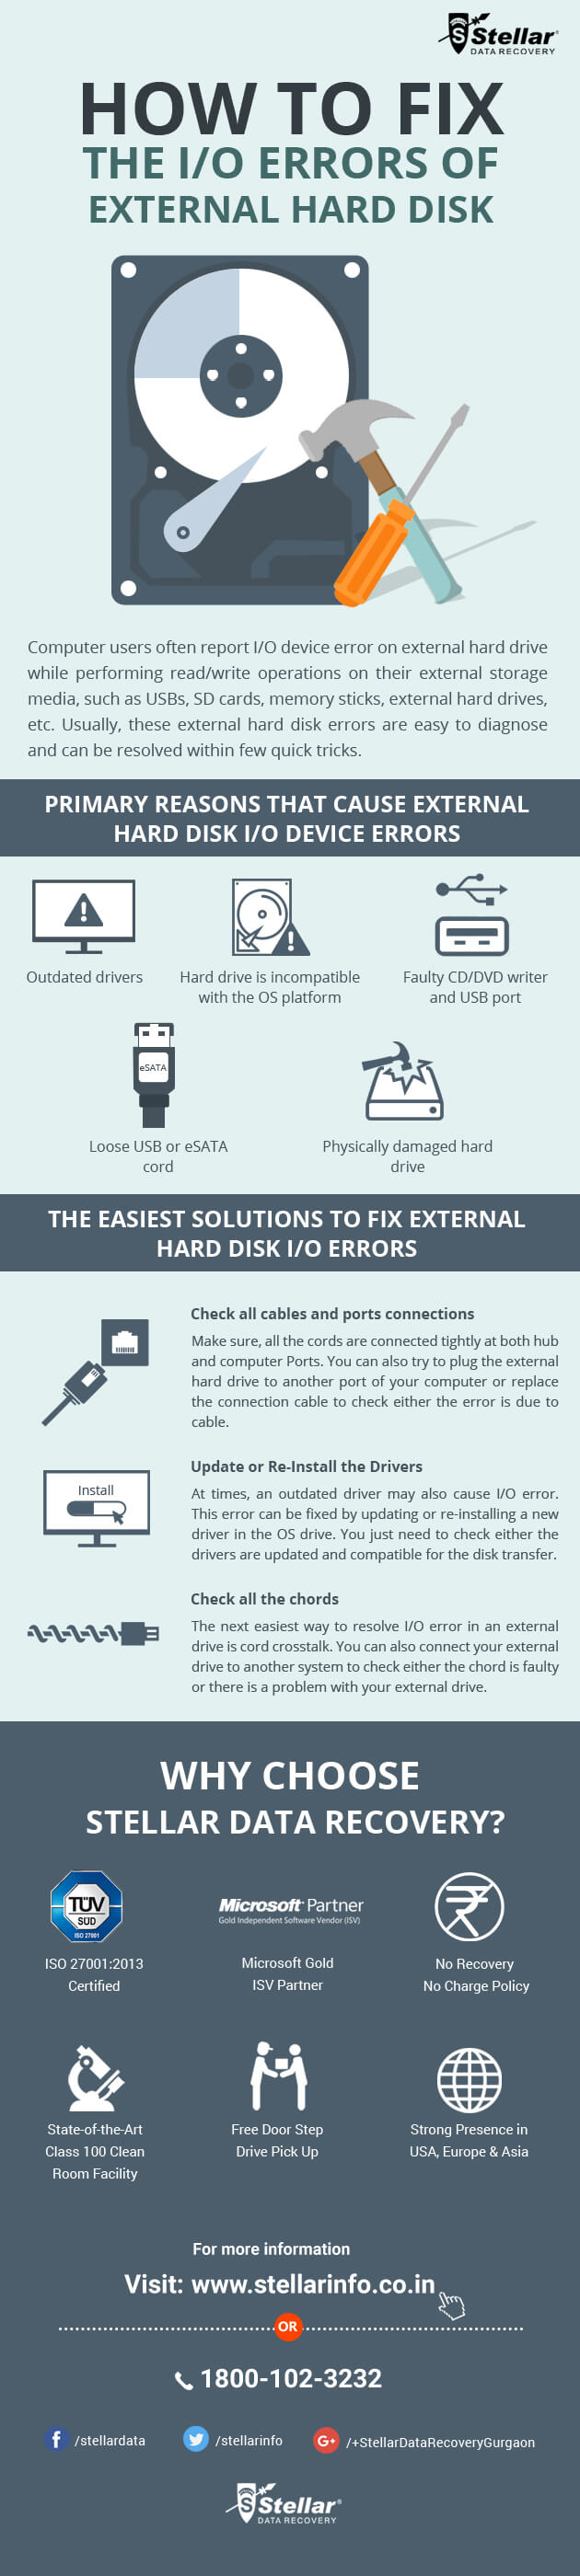 How to fix Hard Disk I/O Errors infographic